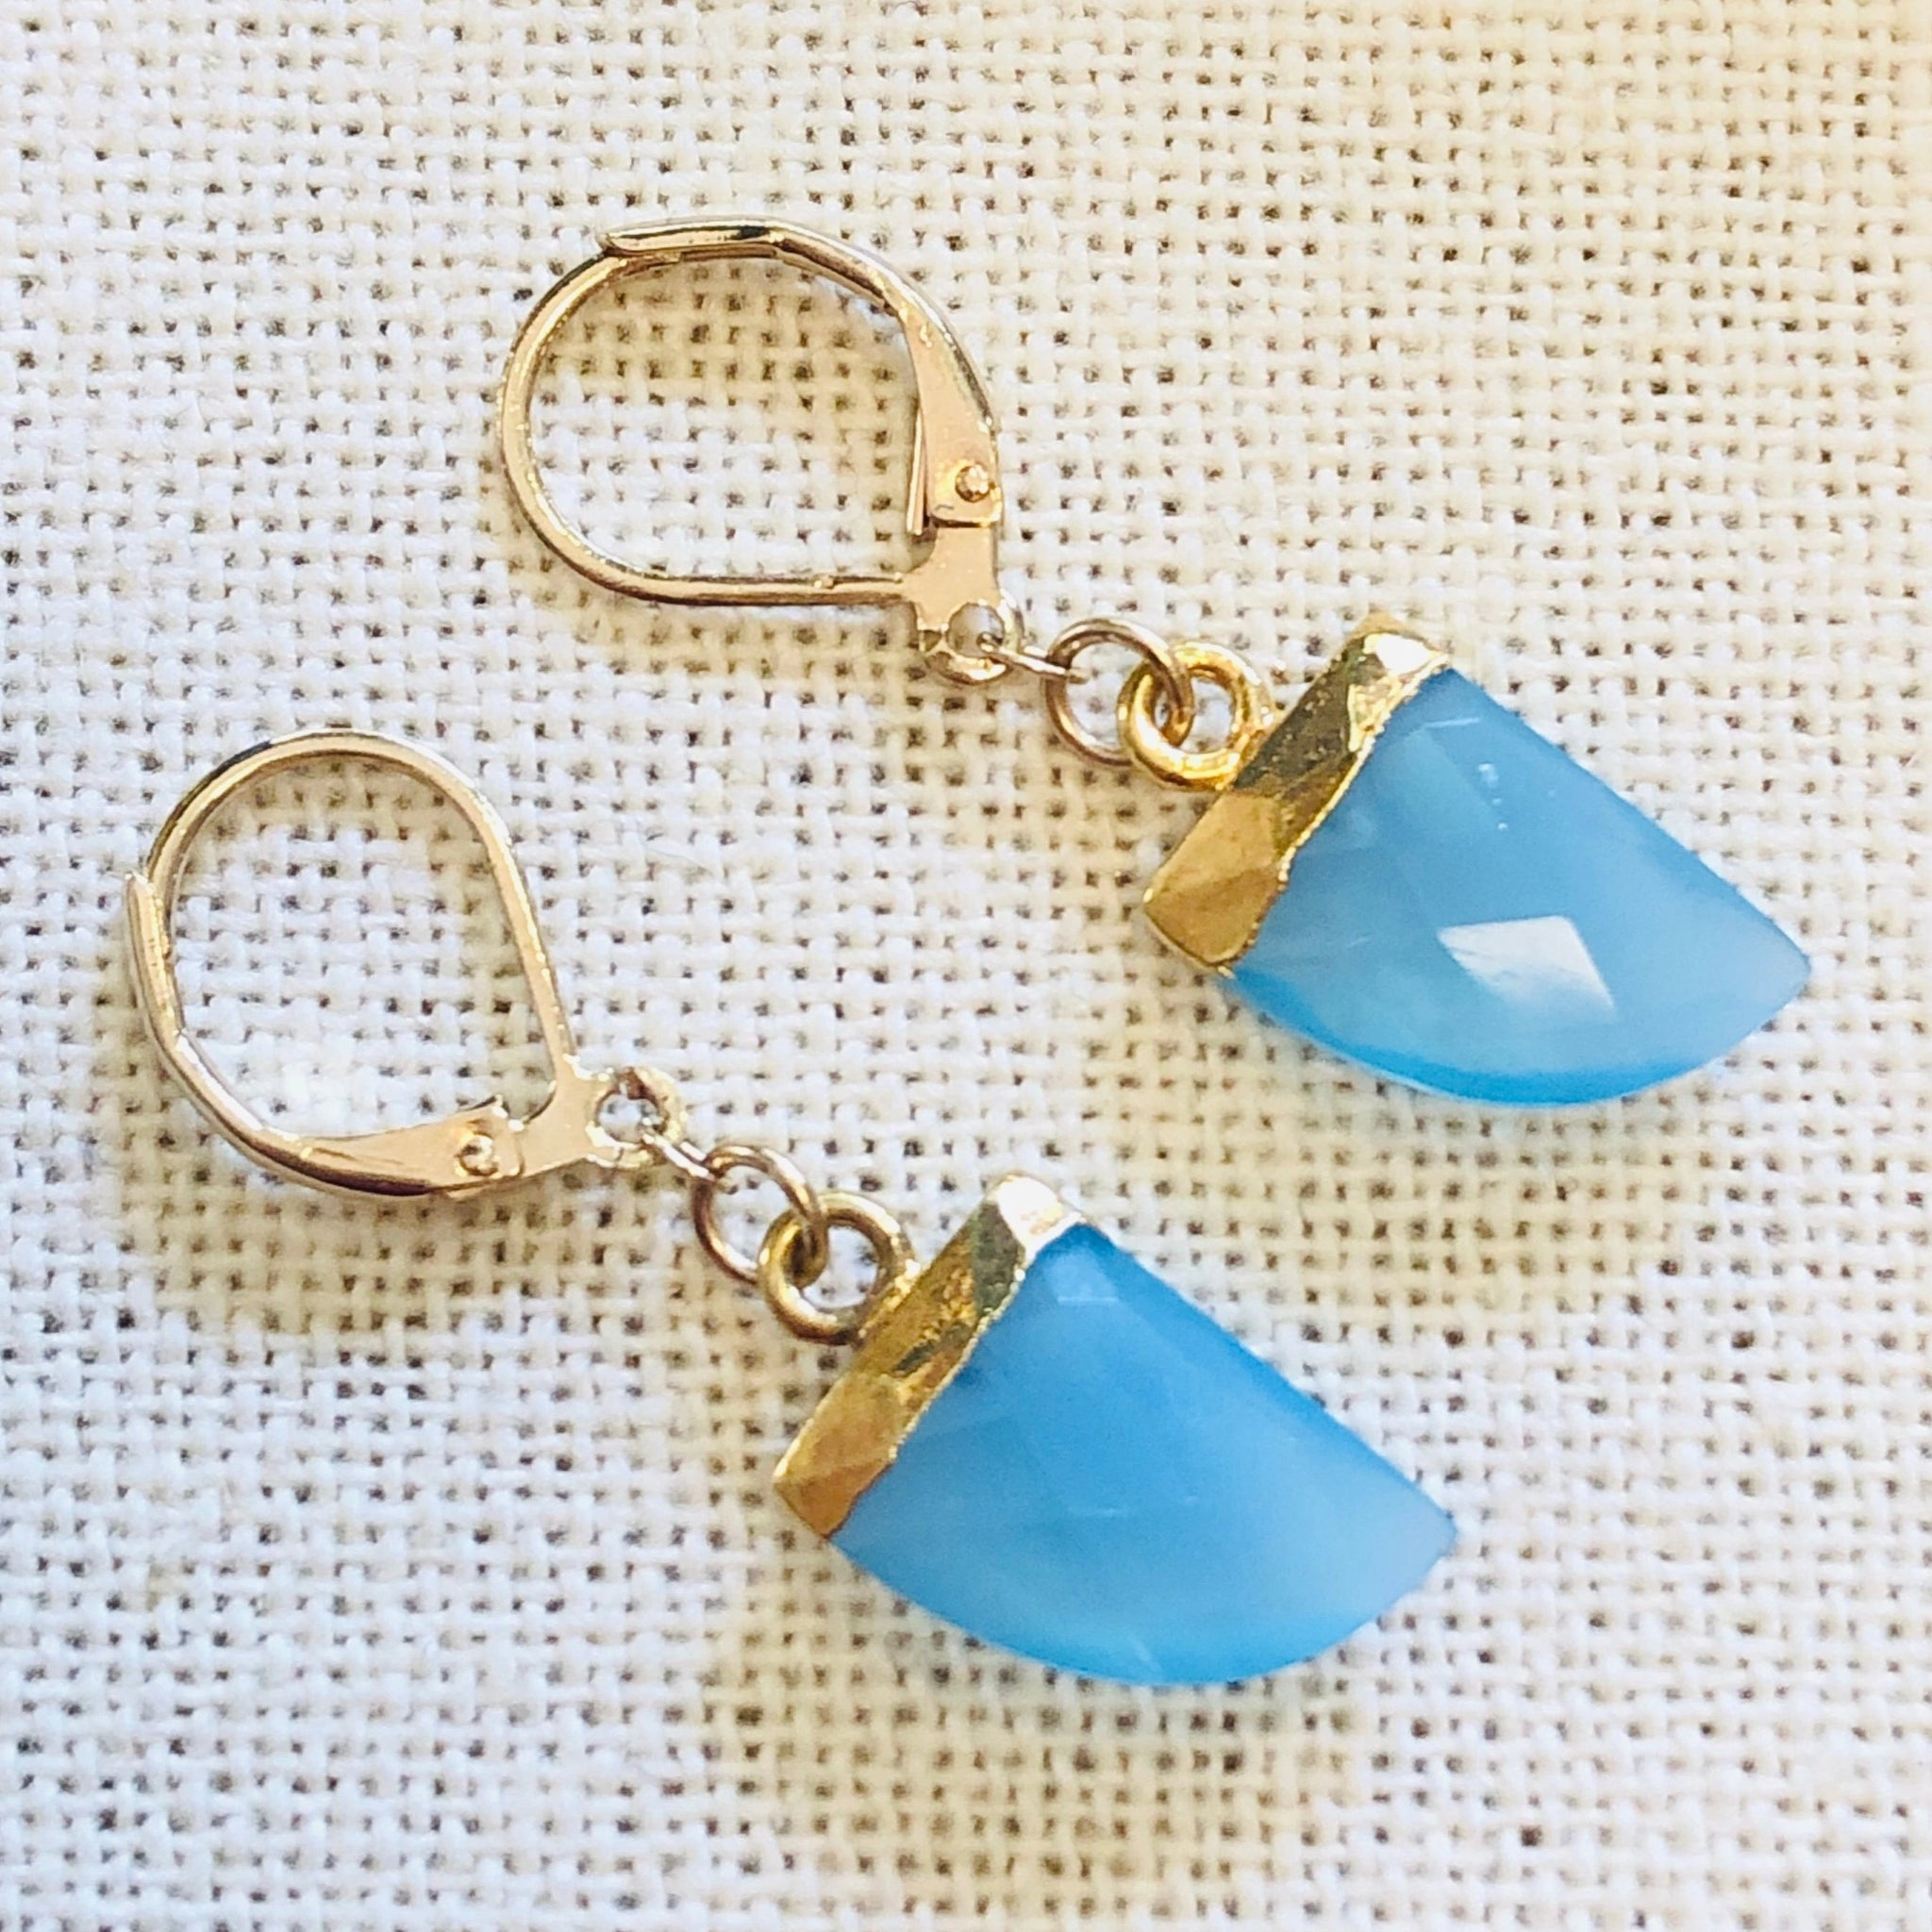 Blue Topaz Horn Charm Gold Earrings by Sage Machado